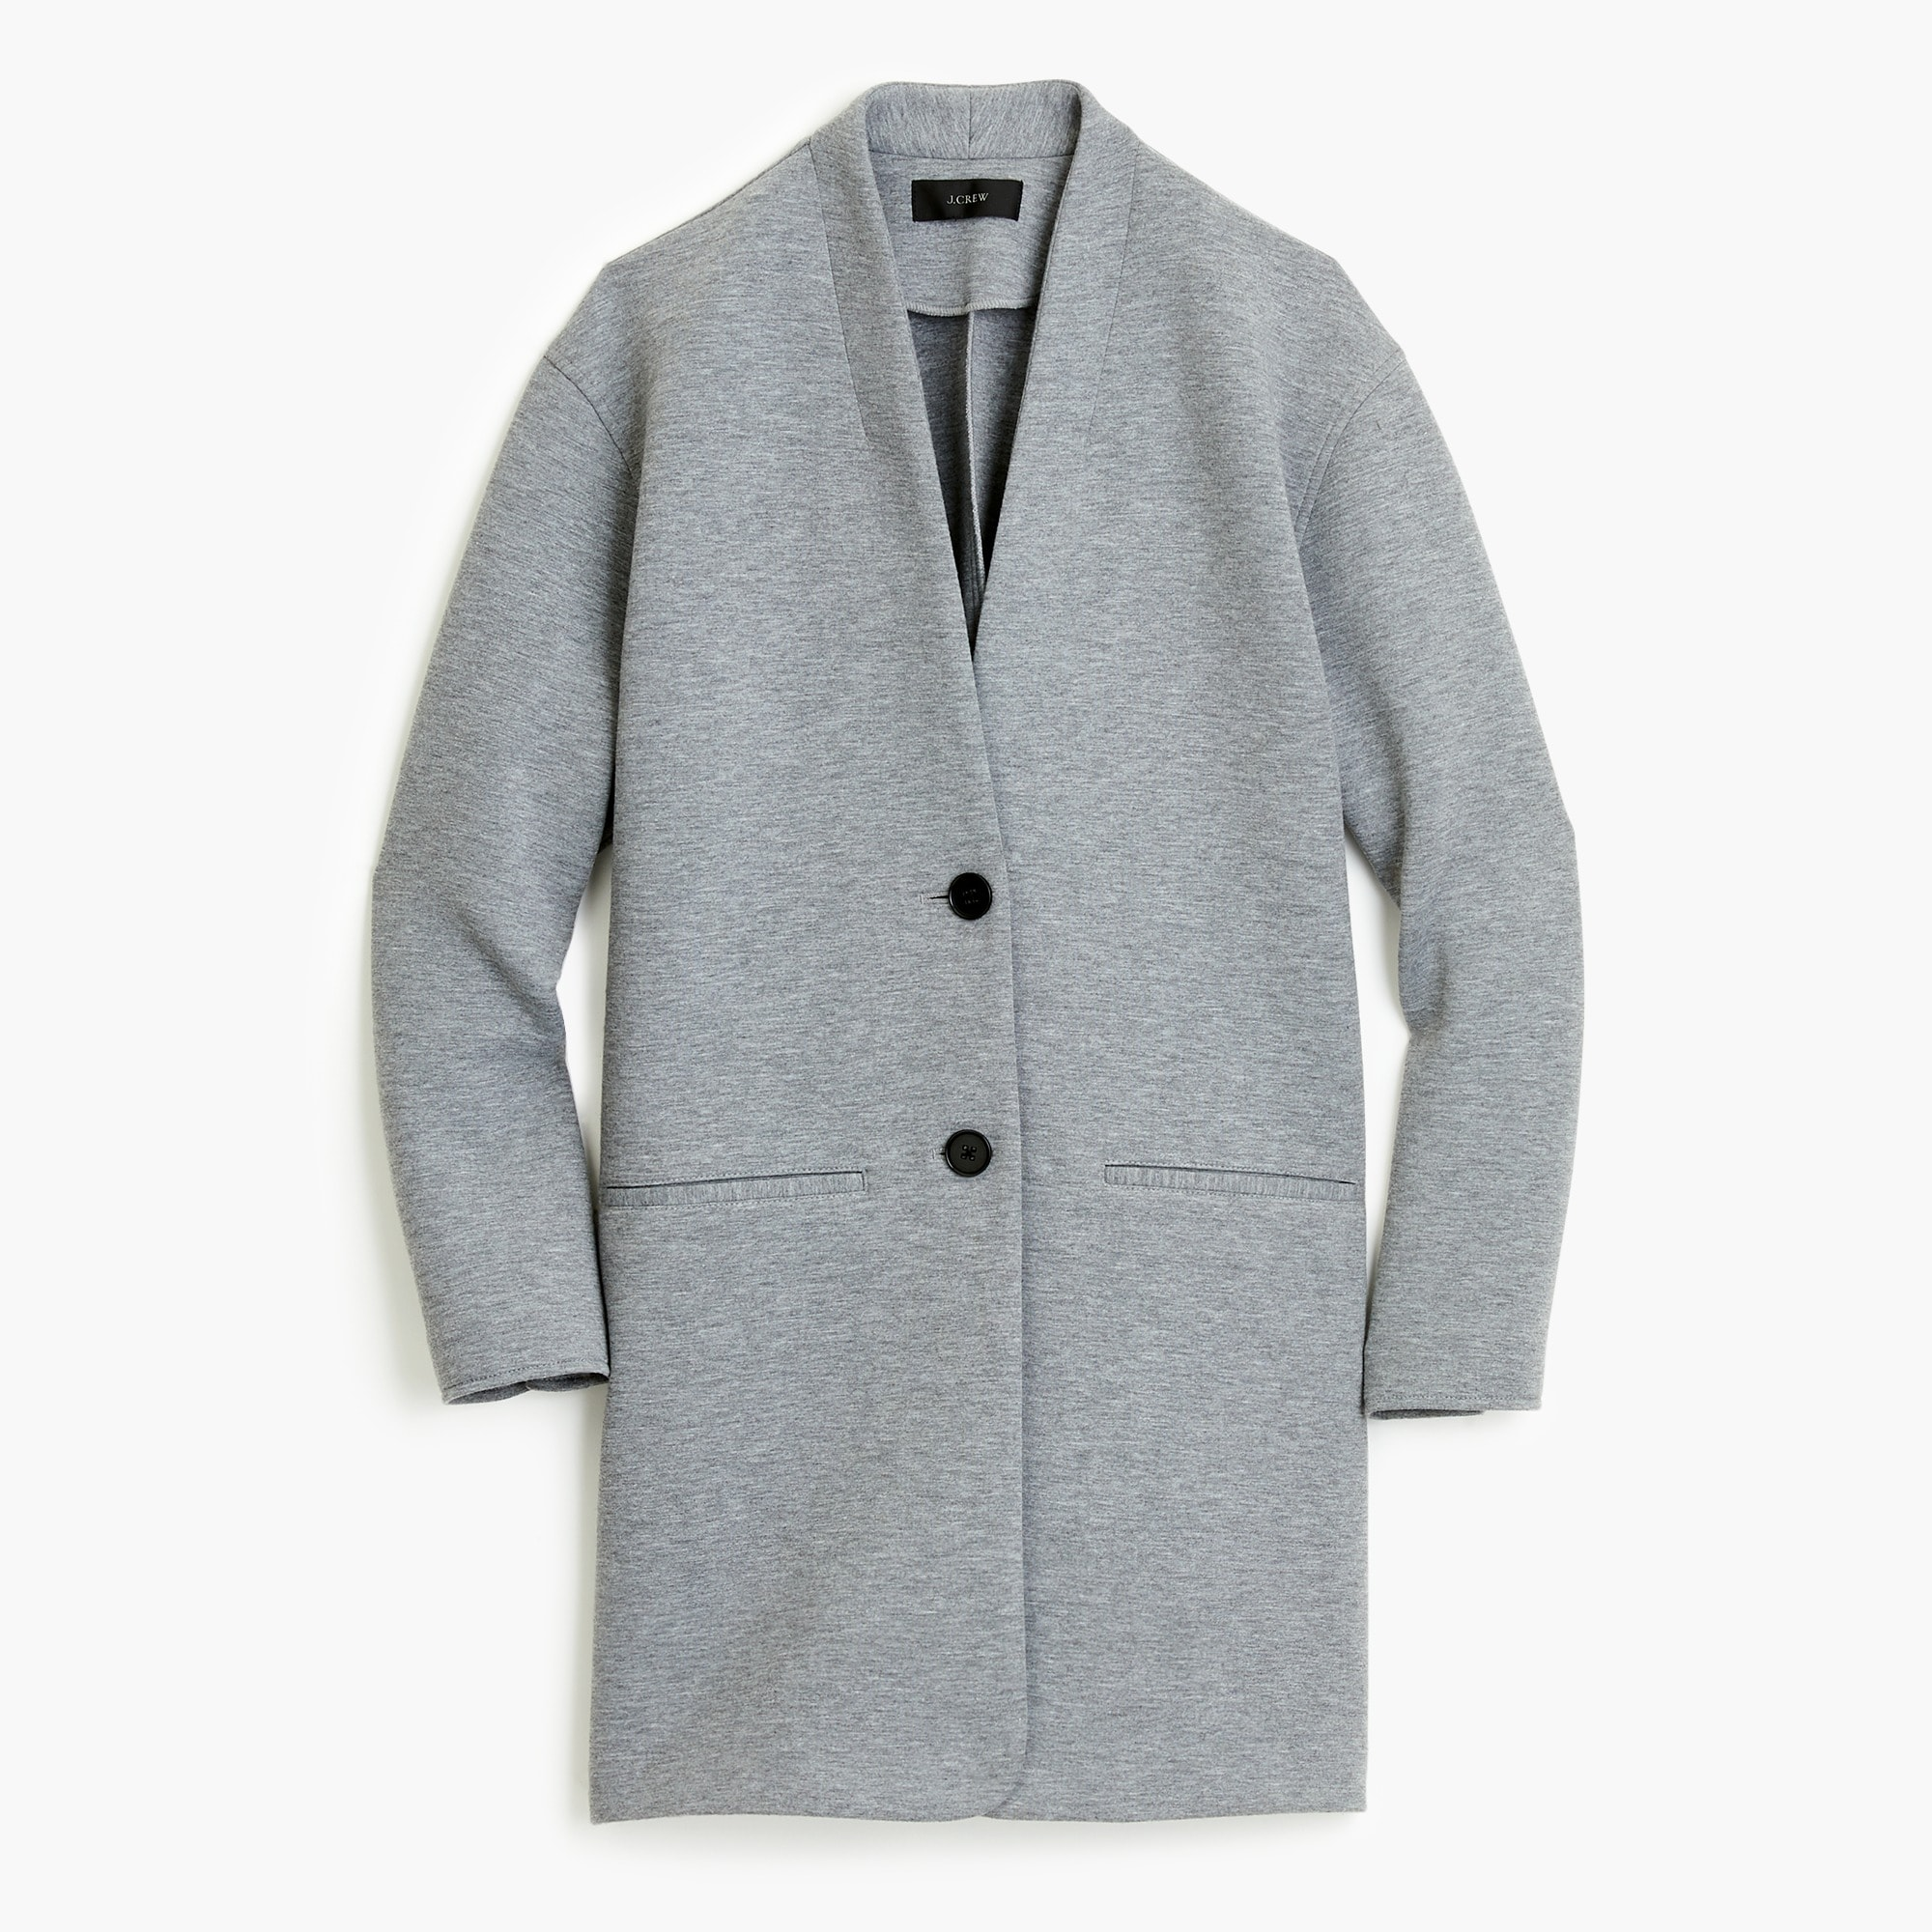 Drapey heather grey jacket